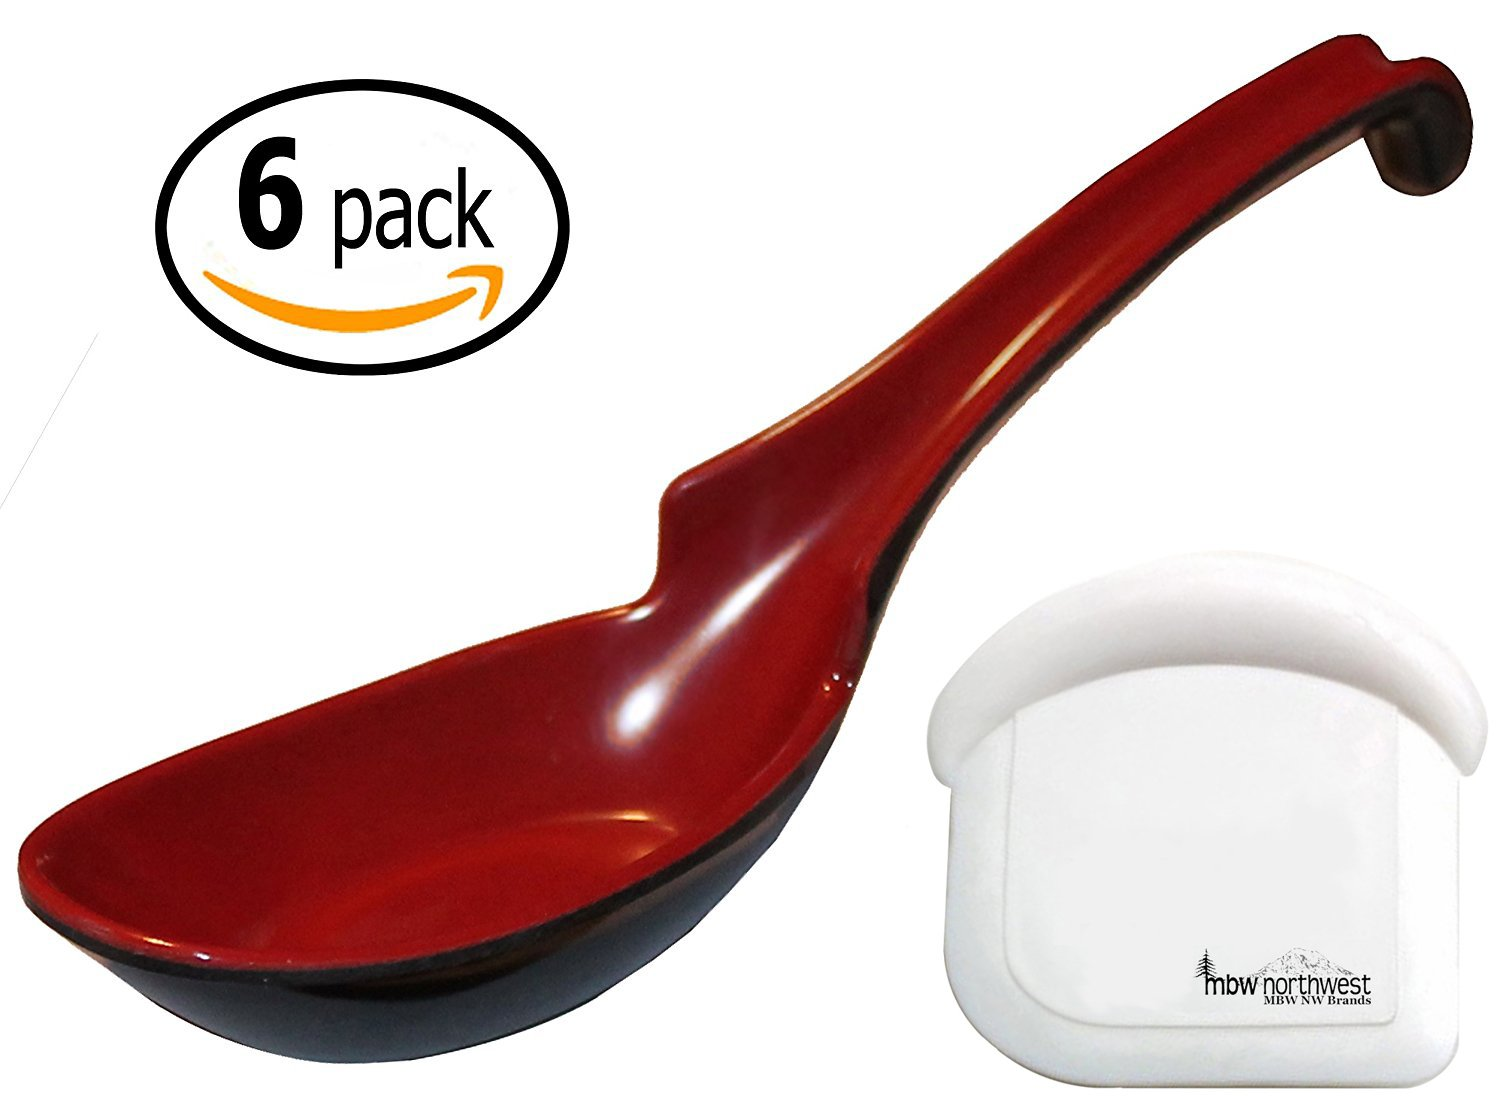 Ladle Melamine Hook Soup Spoons with Pan Scraper, Red and Black, 6 Pack